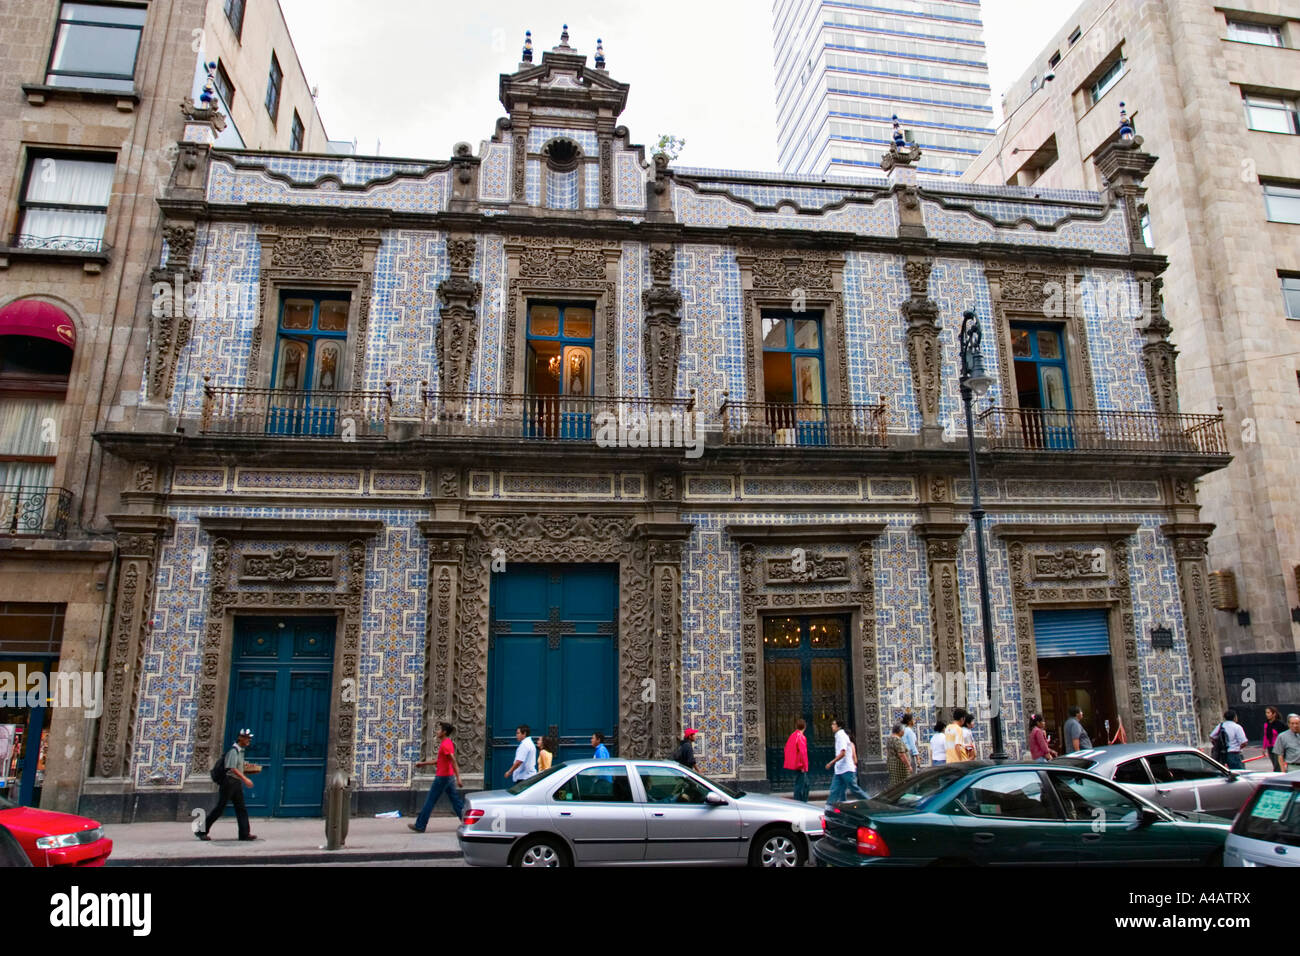 Casa de los azulejos mexico city mexico stock photo for Casa de azulejos